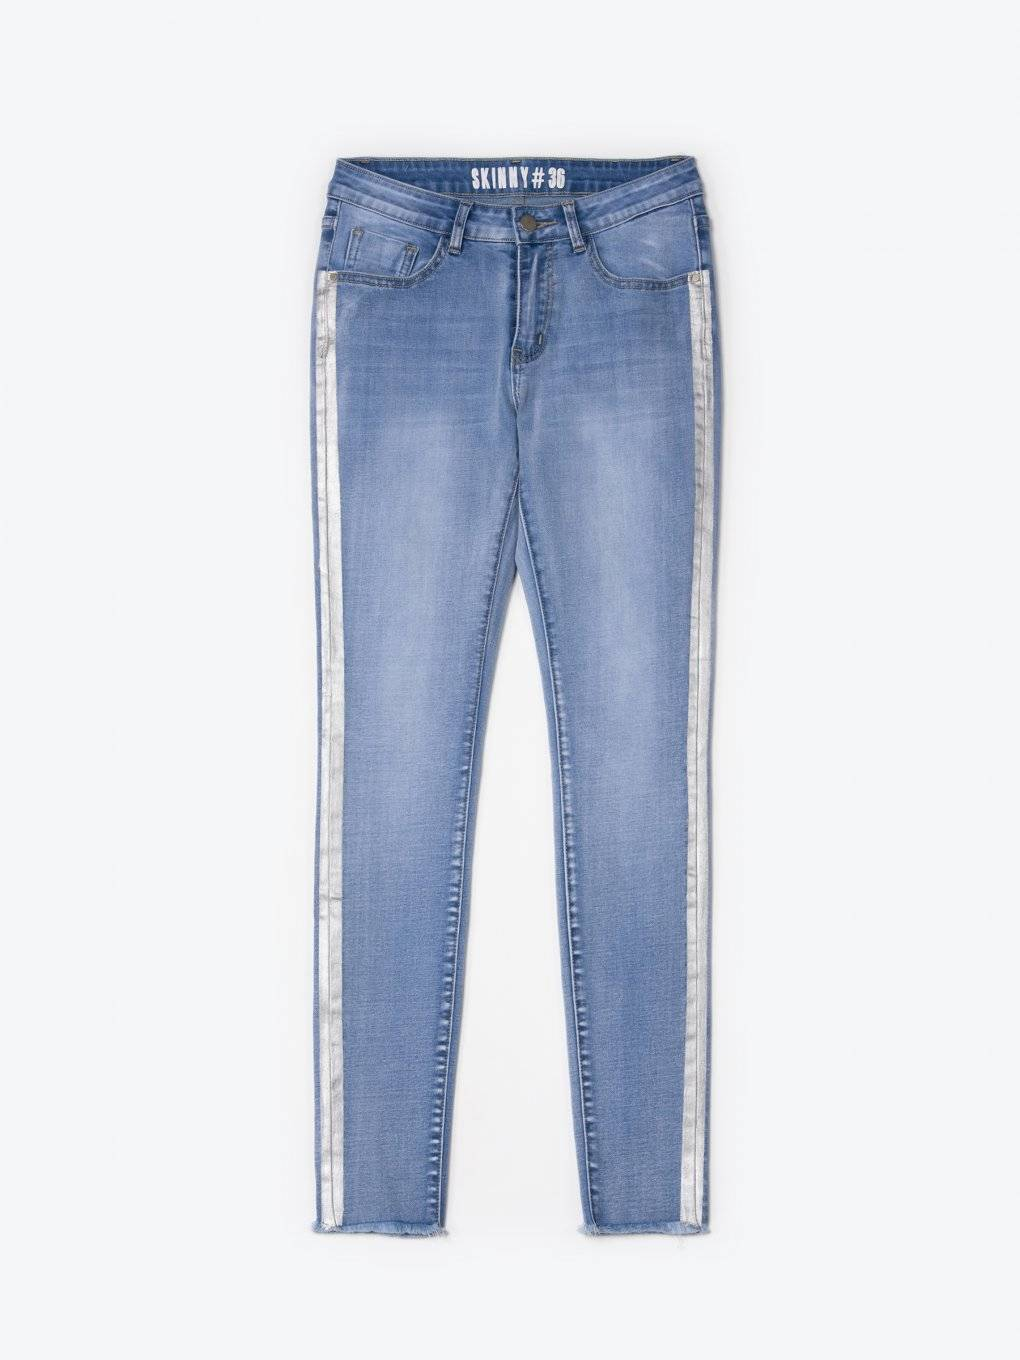 Skinny jeans with metallic side print